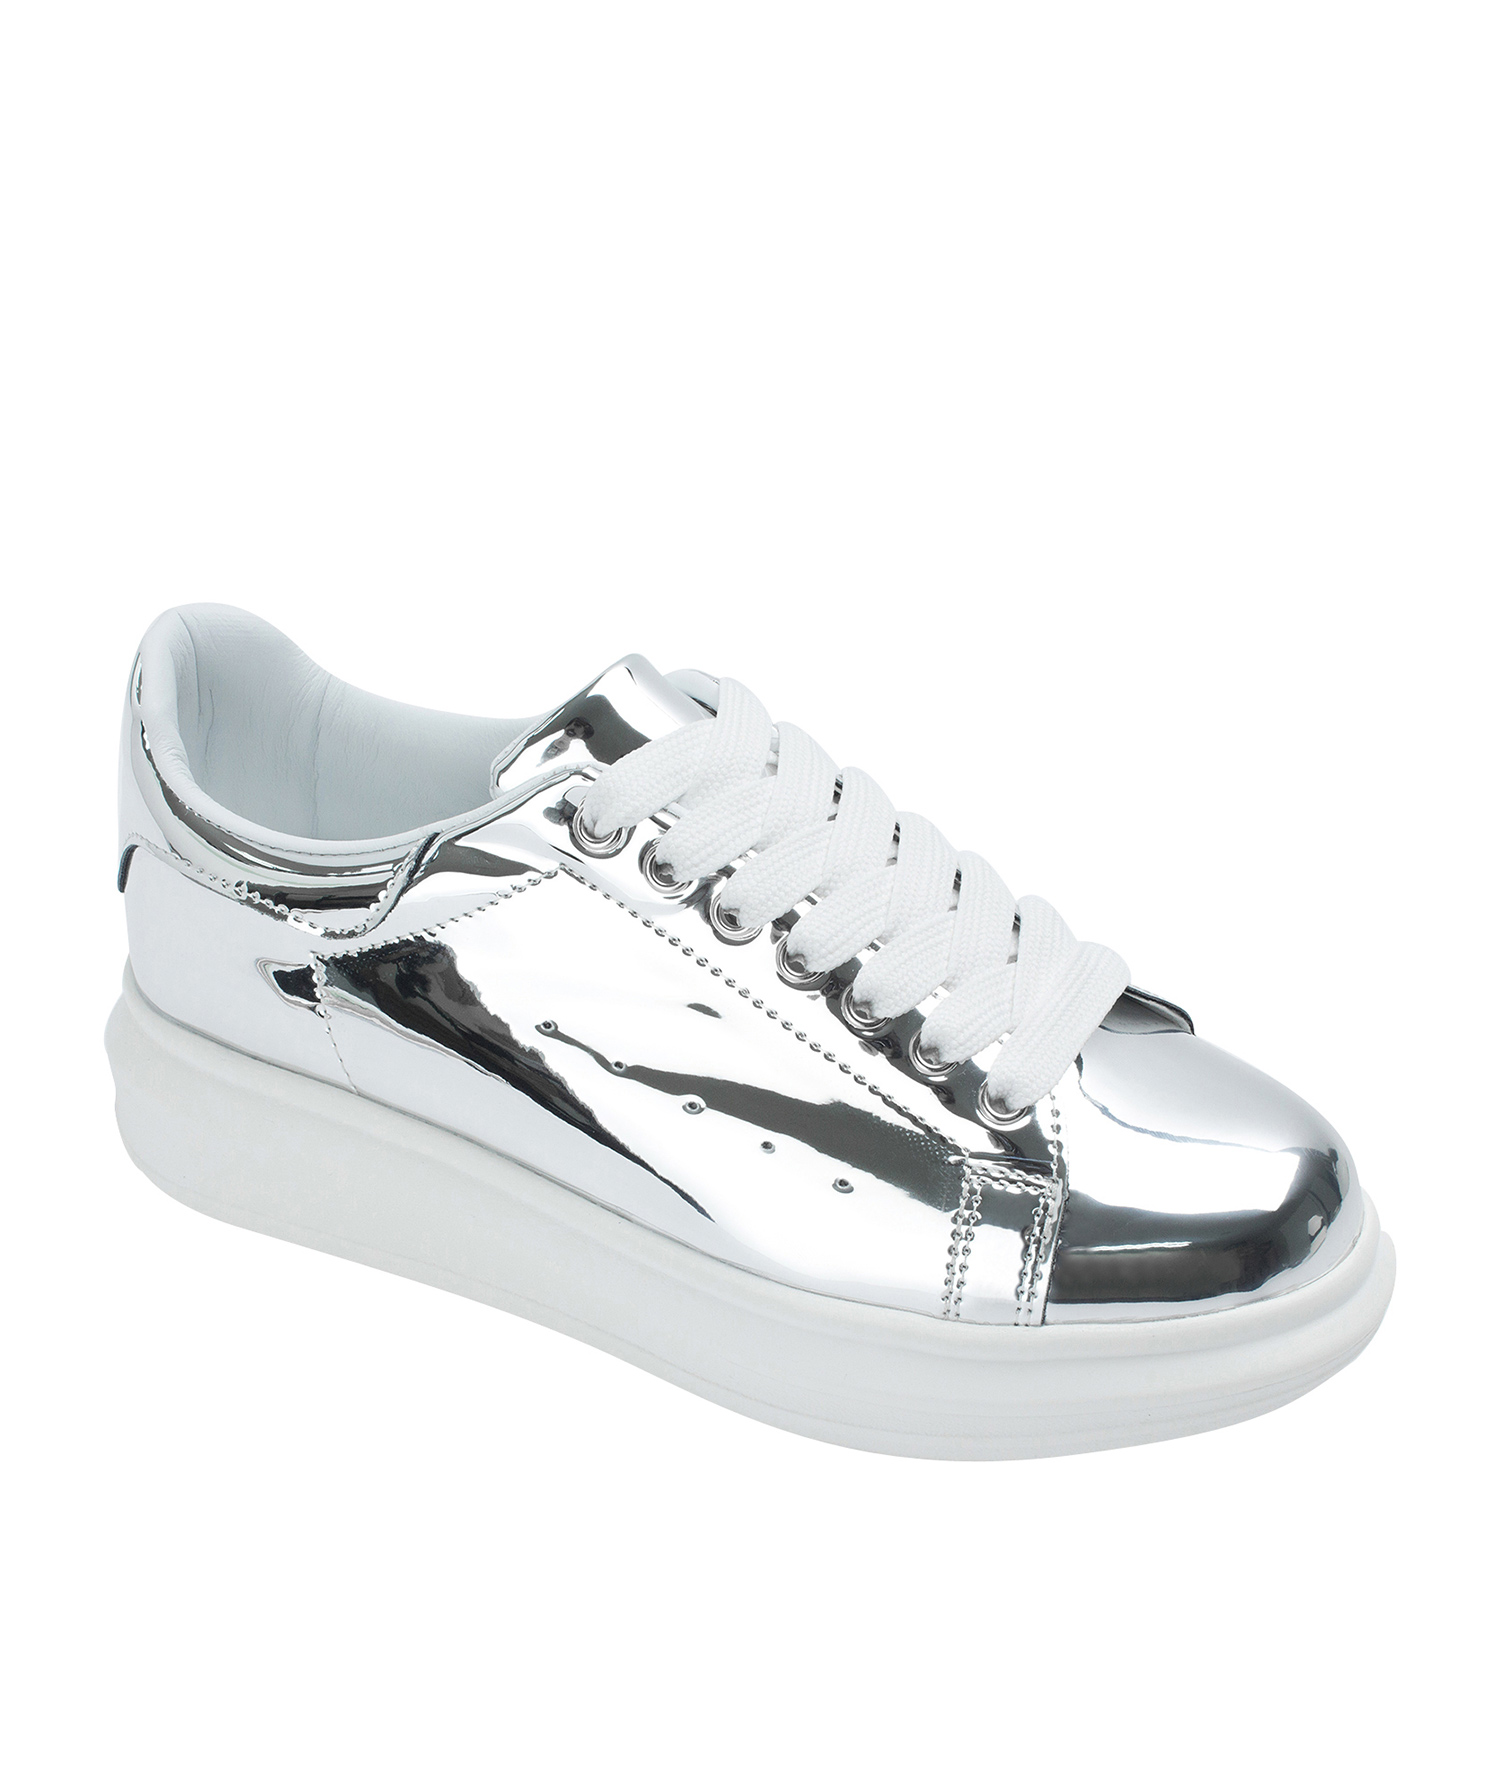 b774d5c2ec61 Annakastle Womens Faux Leather Chunky Sole Sneakers Silver